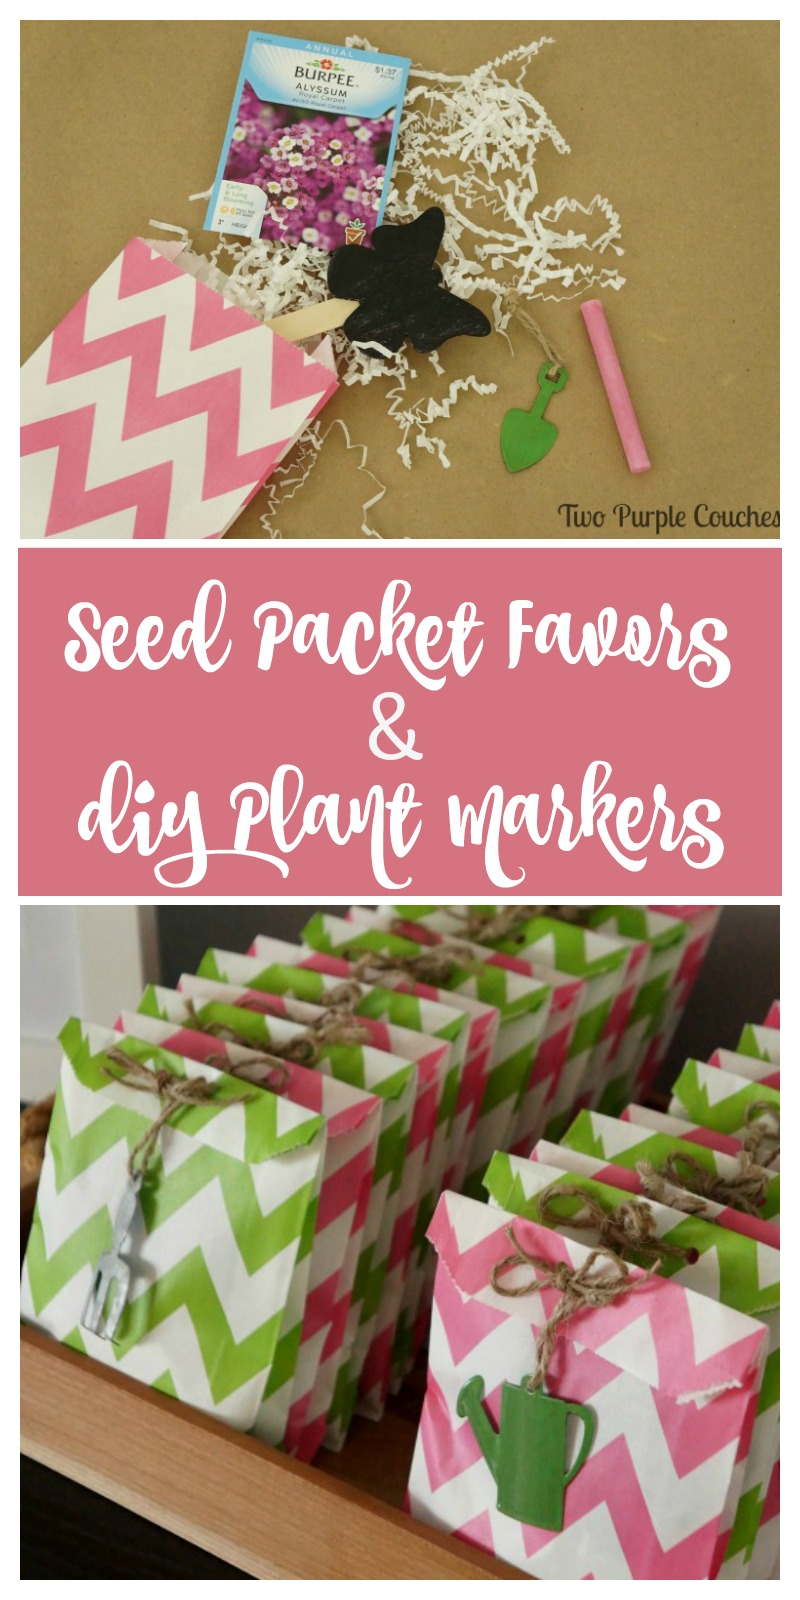 How to make chalkboard plant markers to include in seed packet favors for a bridal shower or wedding. Tutorial included!